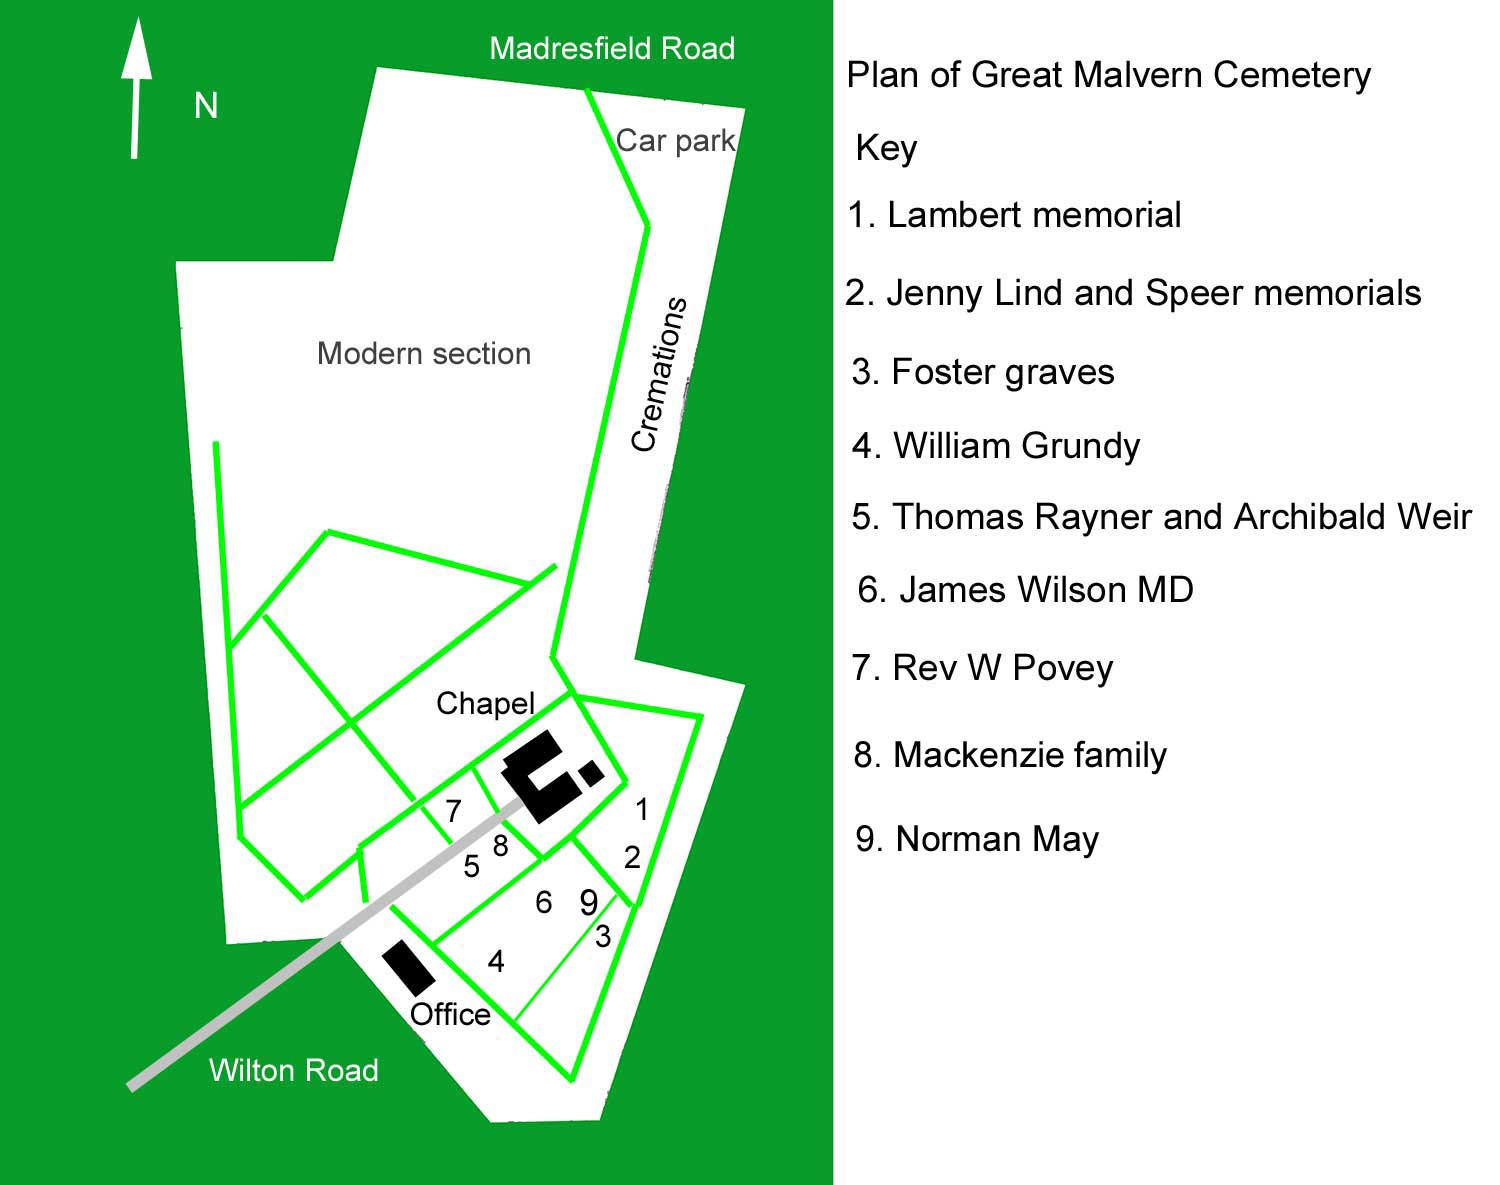 The history of Great Malvern municipal cemetery - overview